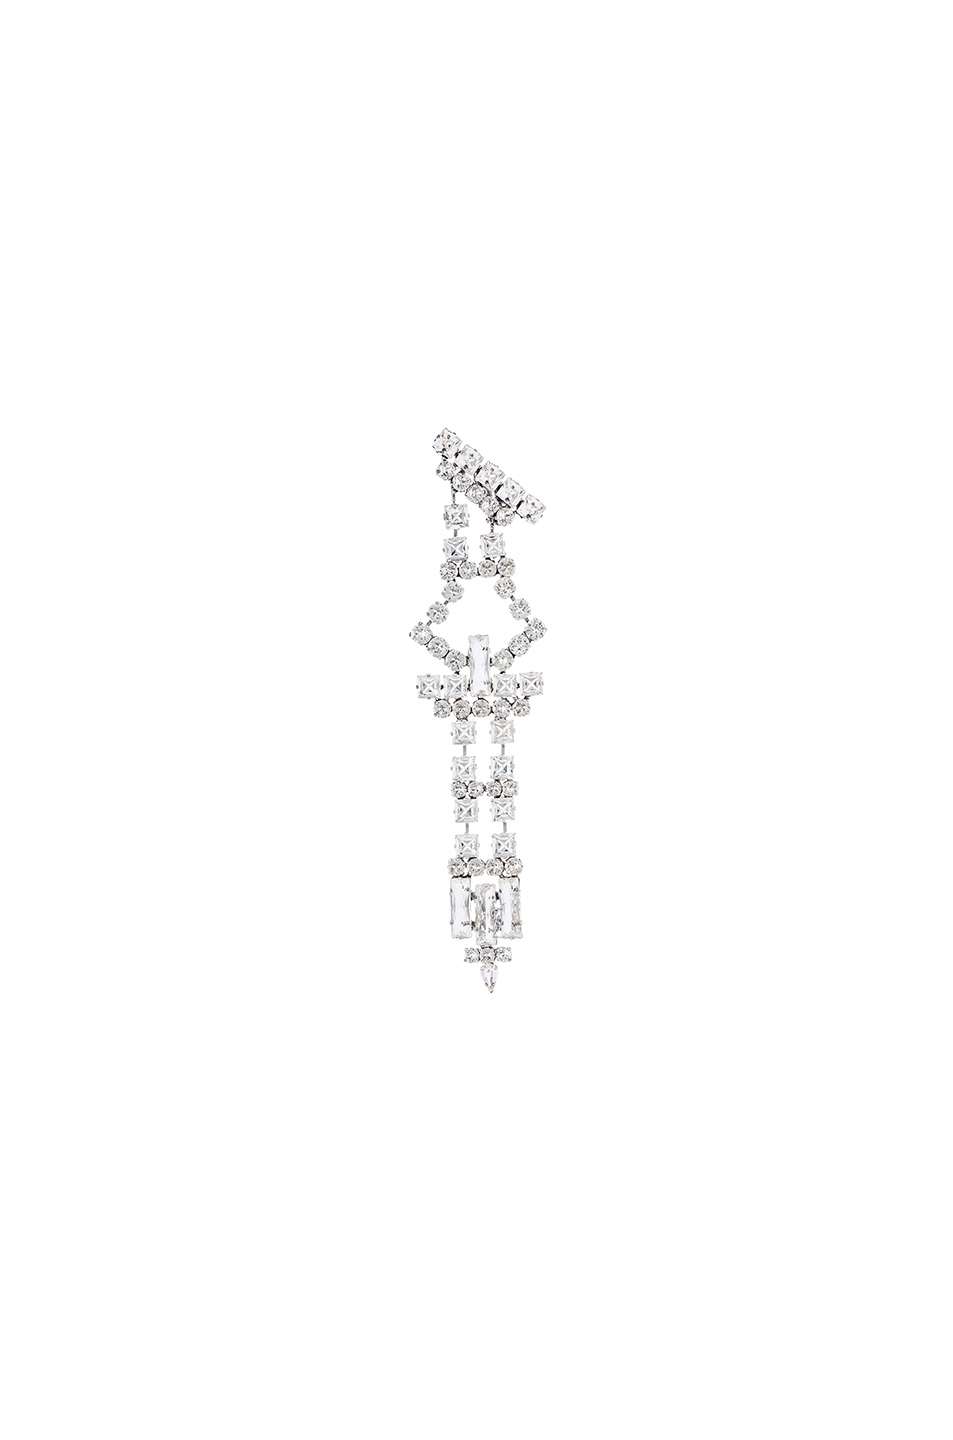 Saint Laurent Smoking Oversized Earring In Silver And Clear In Metallics